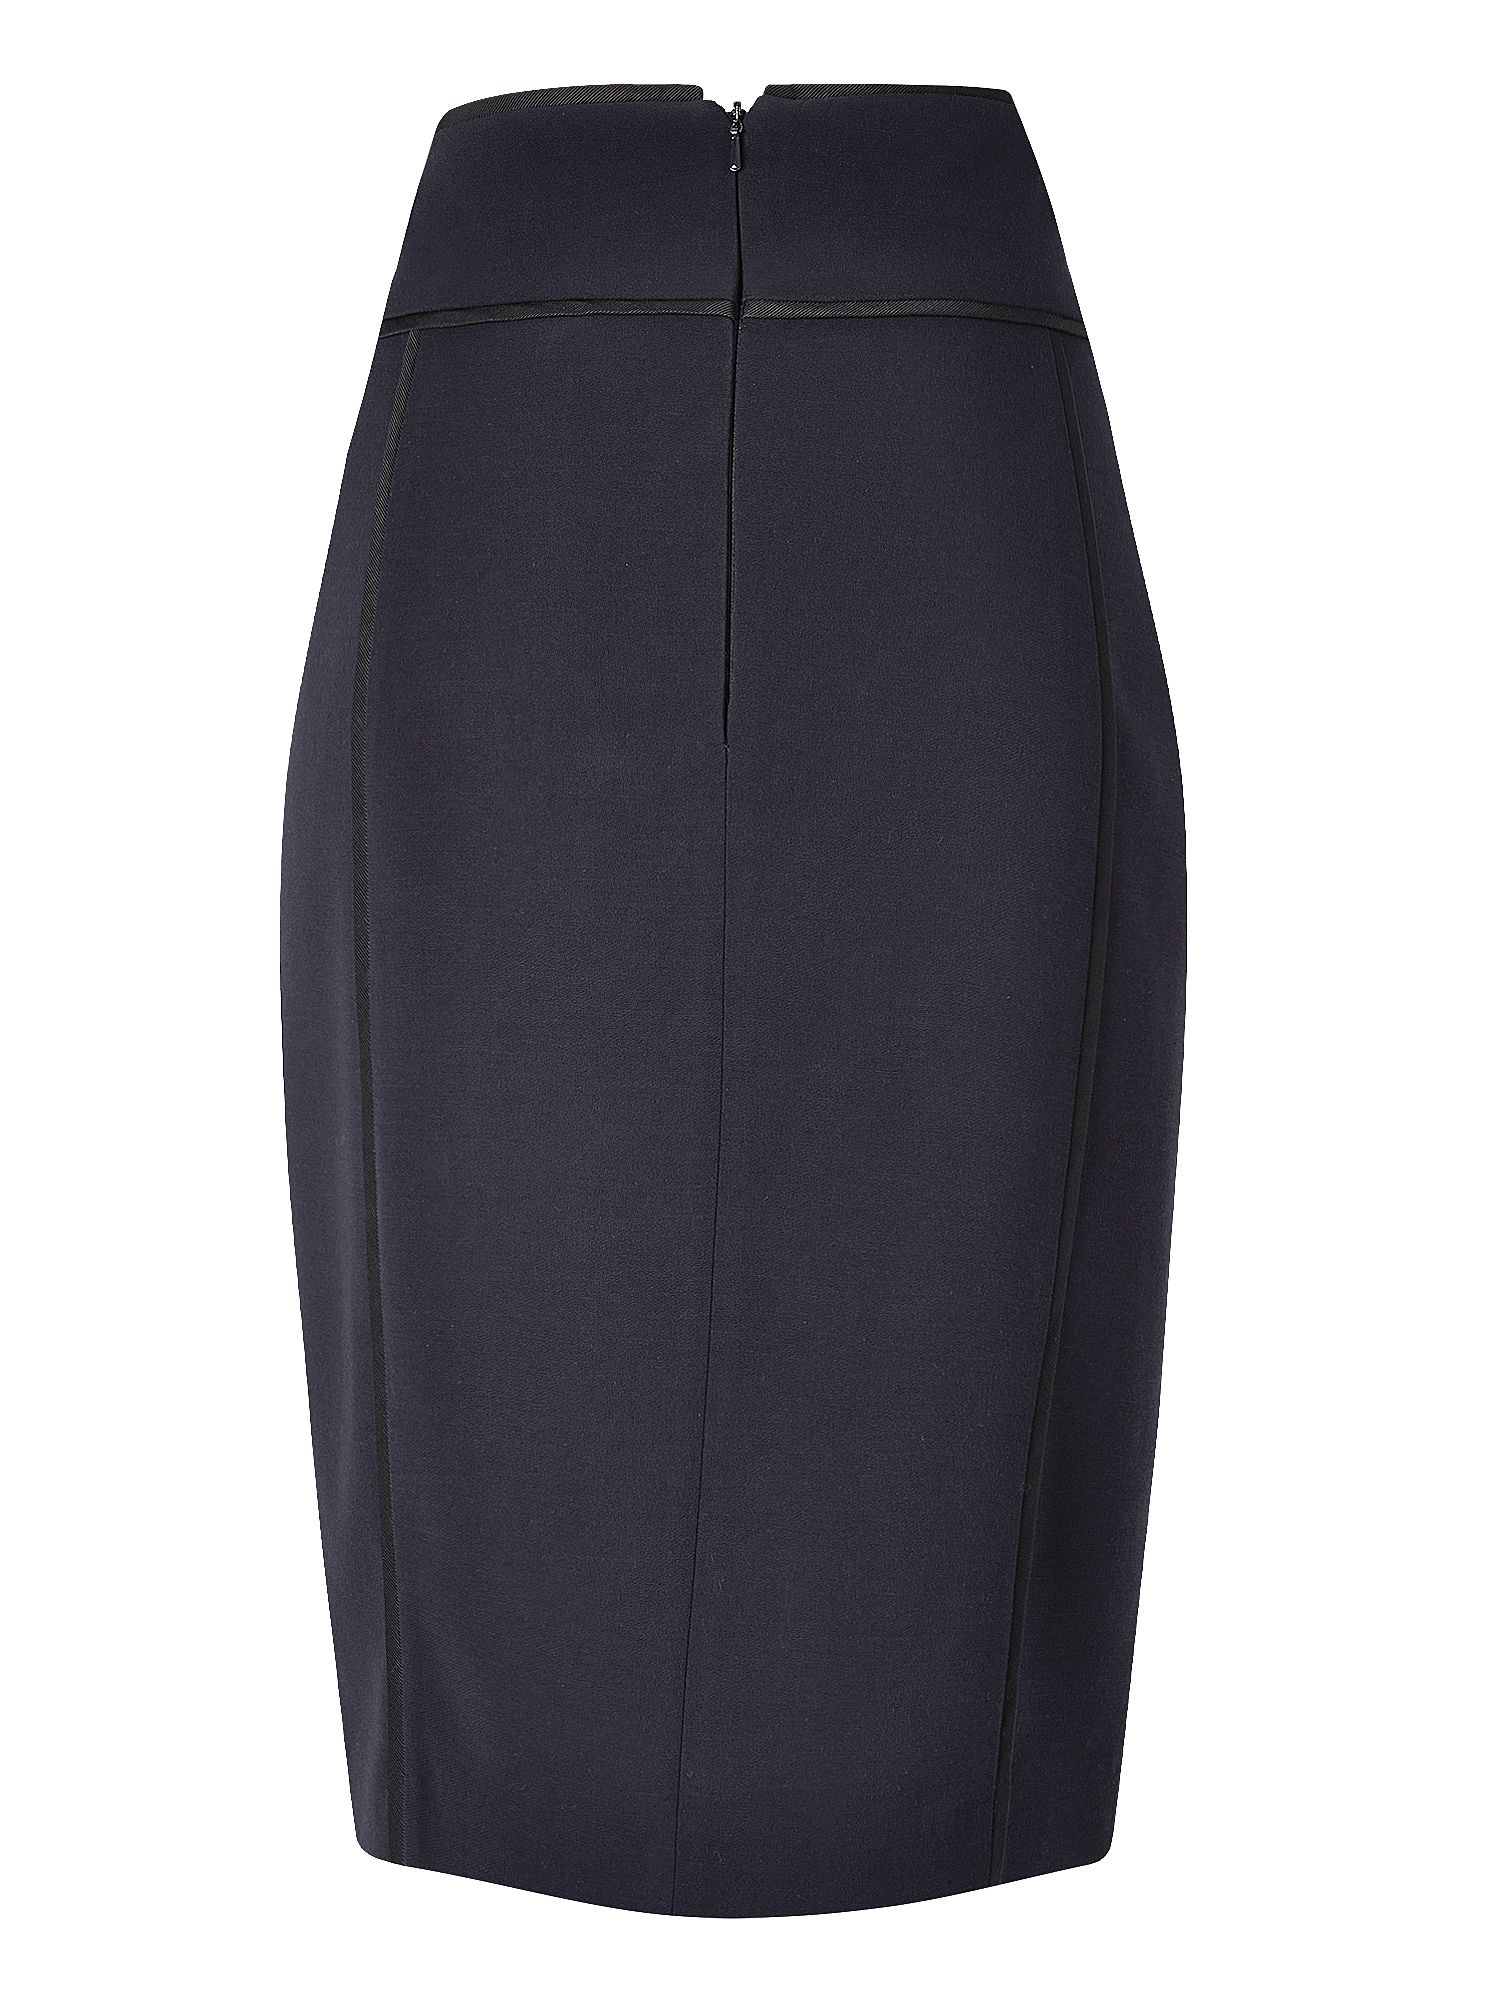 Dali Plain Viscose Mix Pencil Skirt